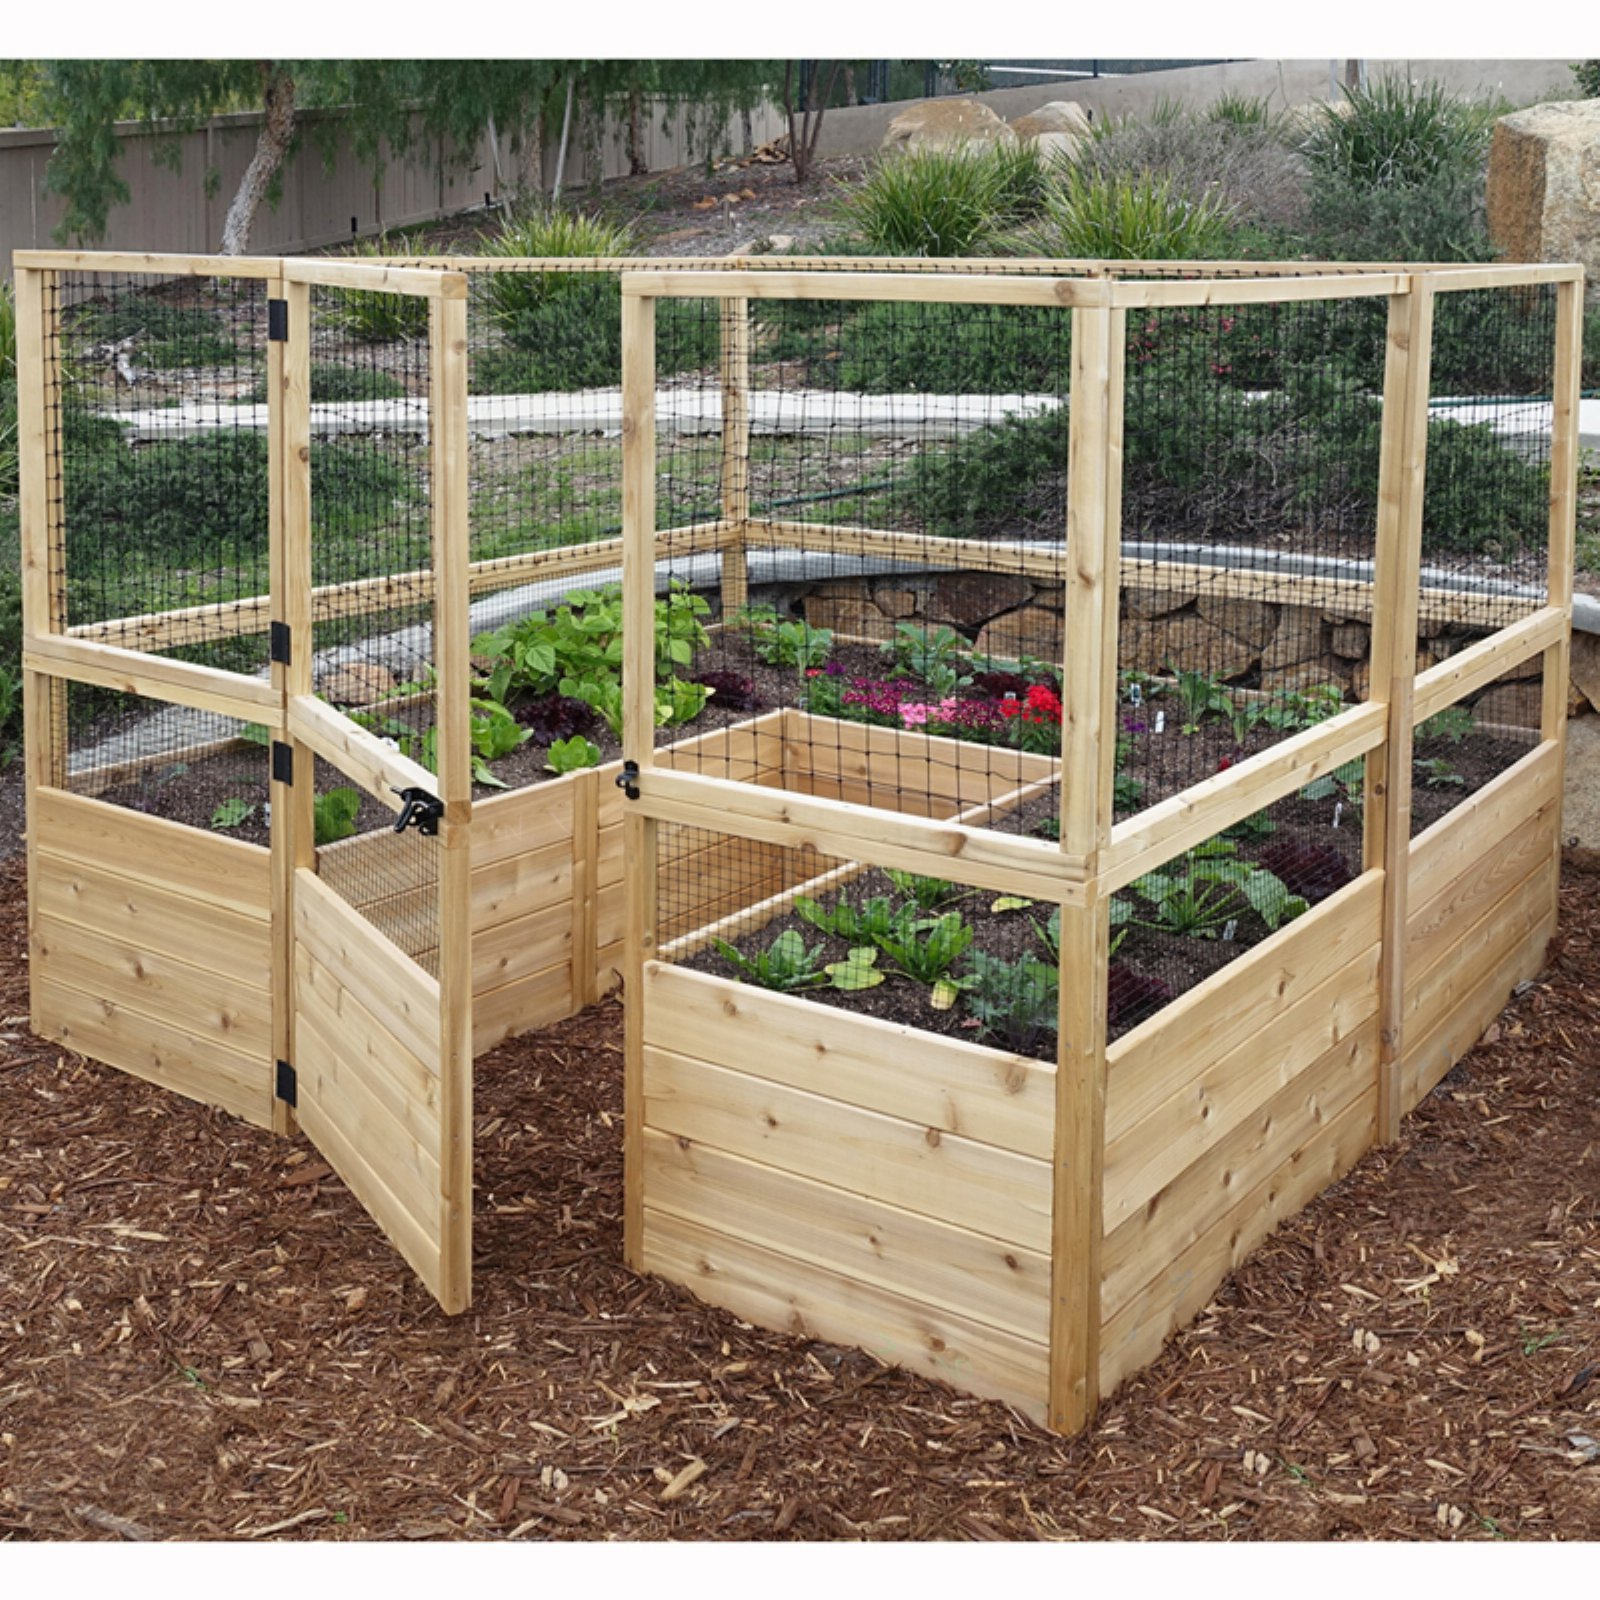 Outdoor Living Today Raised Cedar Garden Bed with Deer Fencing Kit - 8 x 8 ft.